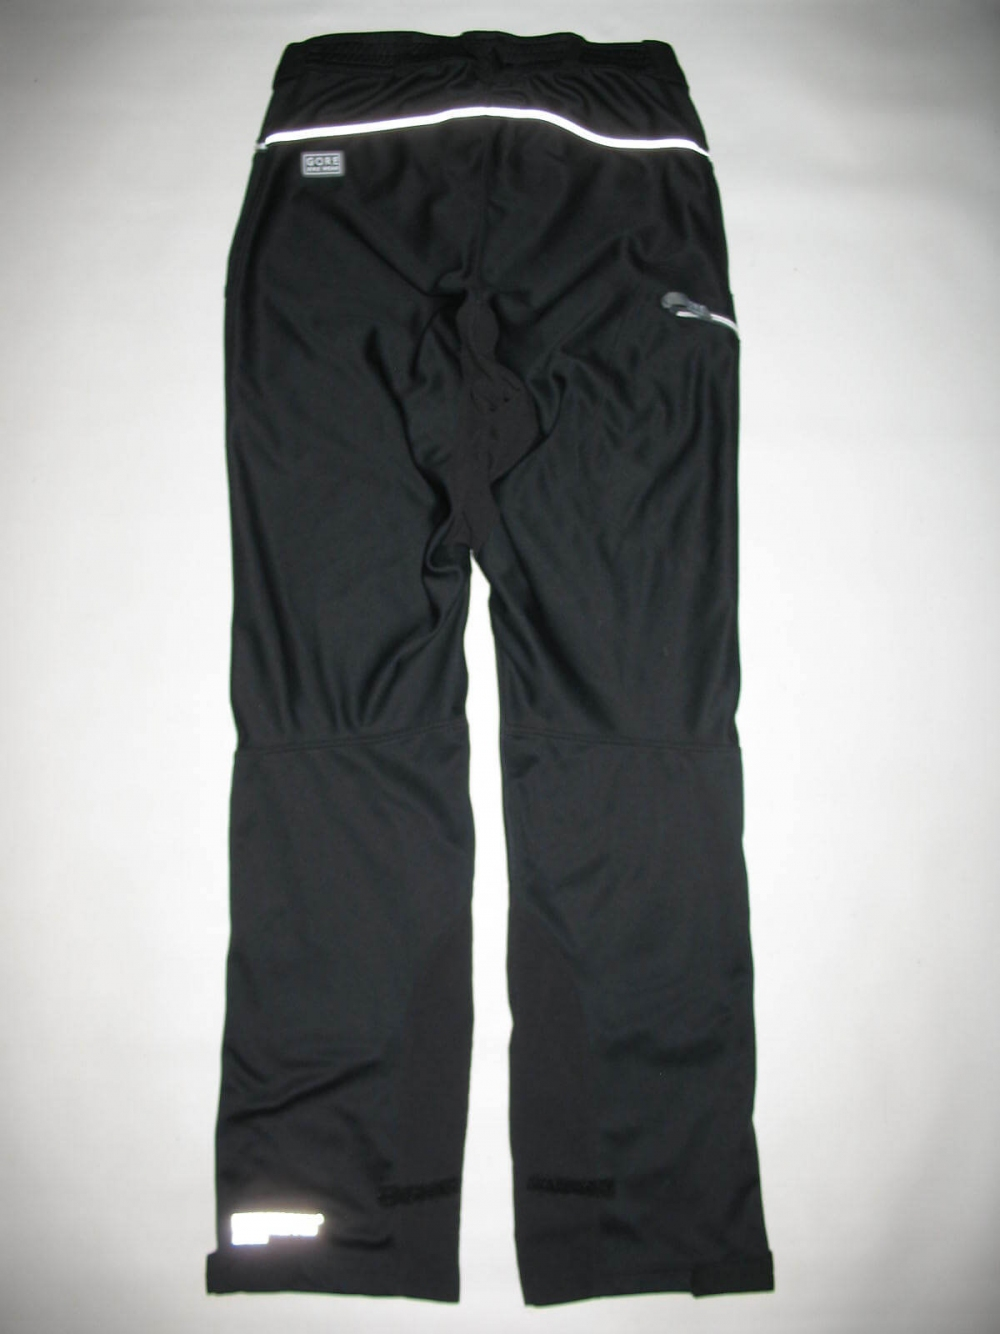 Штаны GORE Countdown Windstopper Soft Shell Pants (размер M) - 2